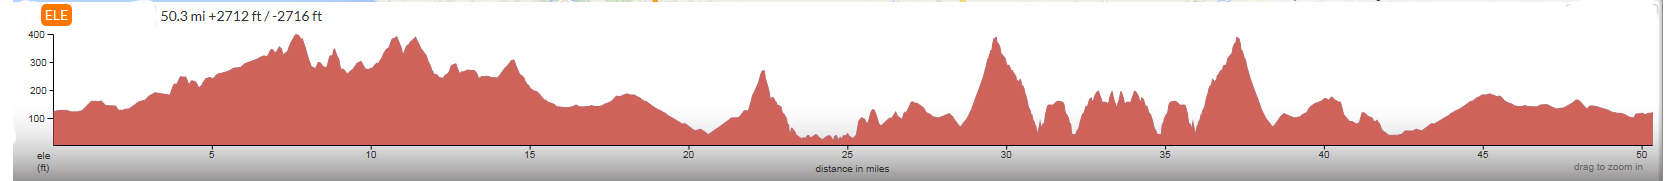 Biddle-Turri-Montana-de-Oro-Elevation-Profile.jpg